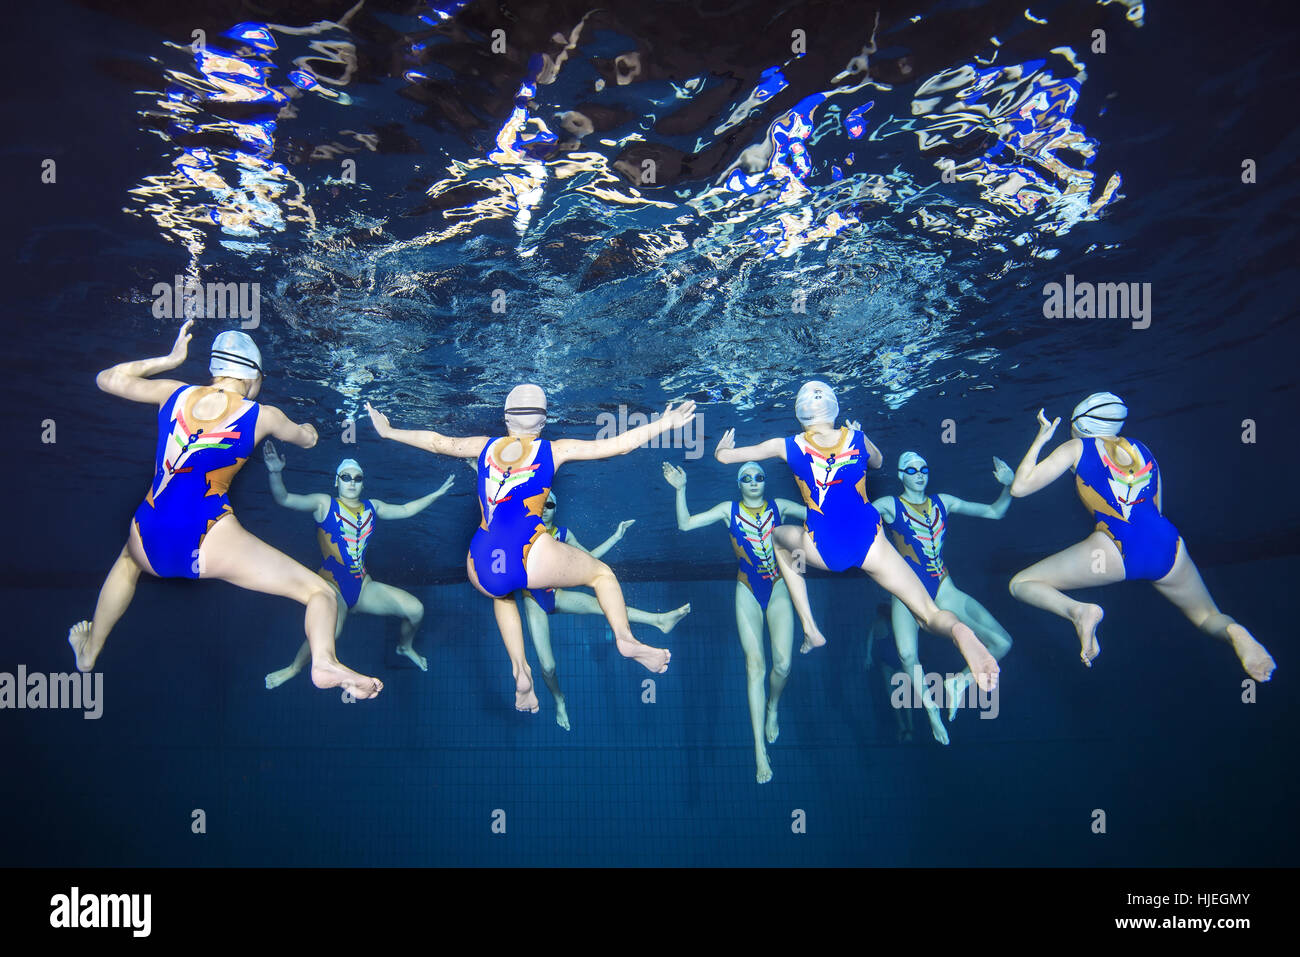 Synchronised Swimming Stock Photos Synchronised Swimming Stock Images Alamy